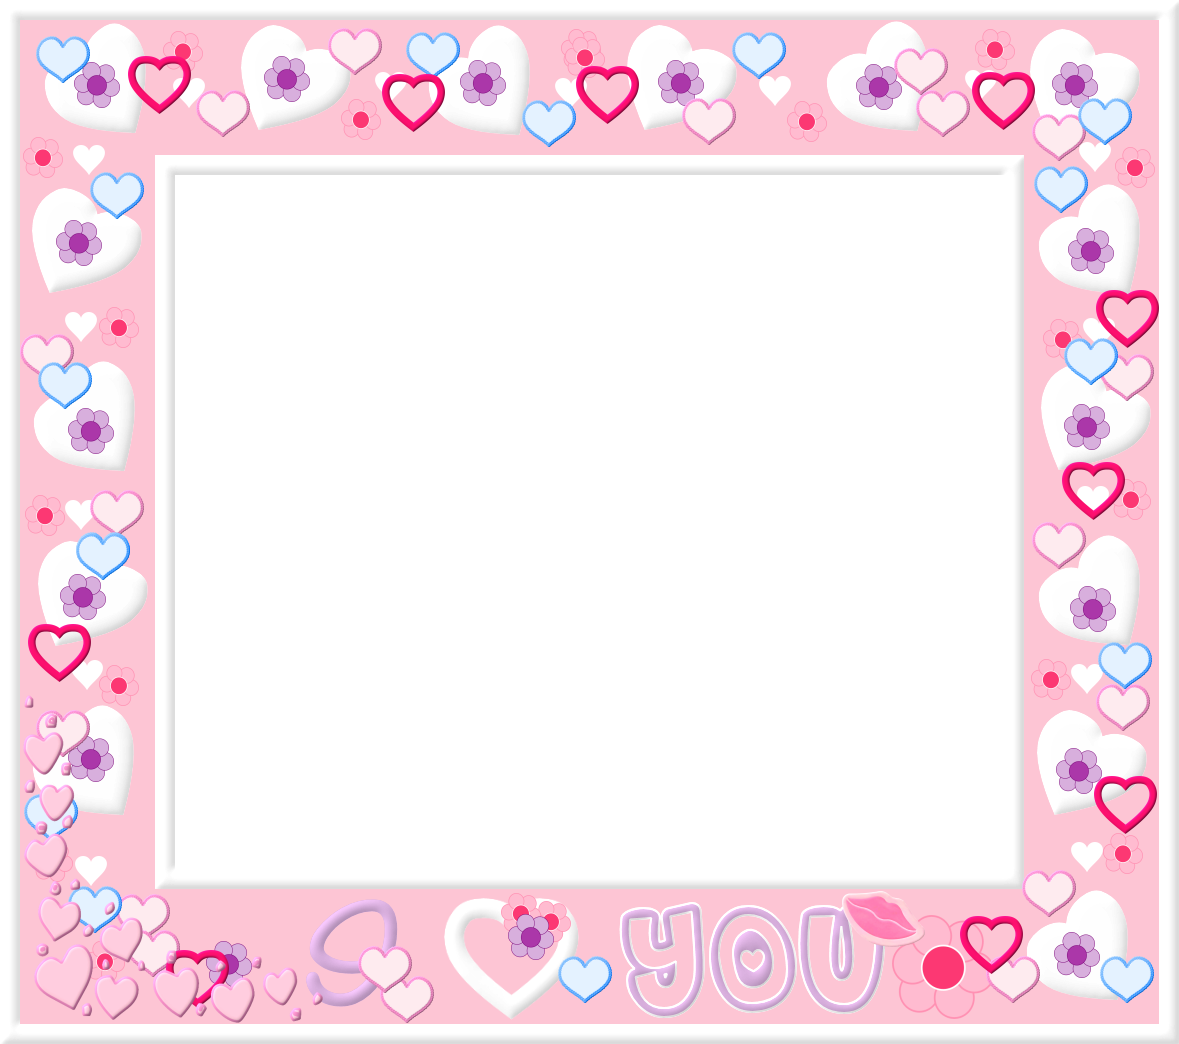 Frames png tumblr. Free pink and white